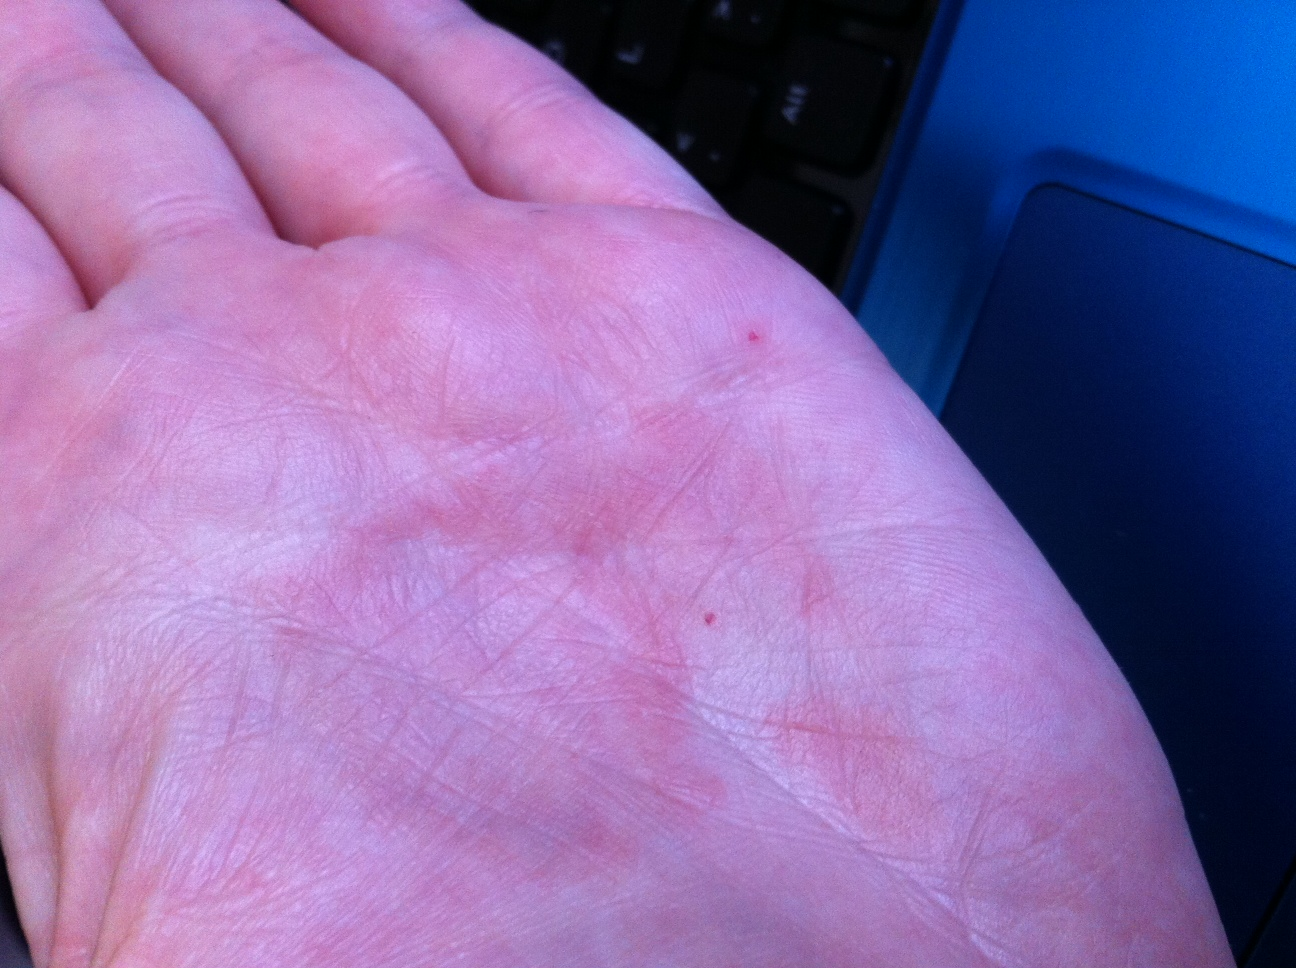 Red itchy palms, is this caused by hormones? - HealthTap